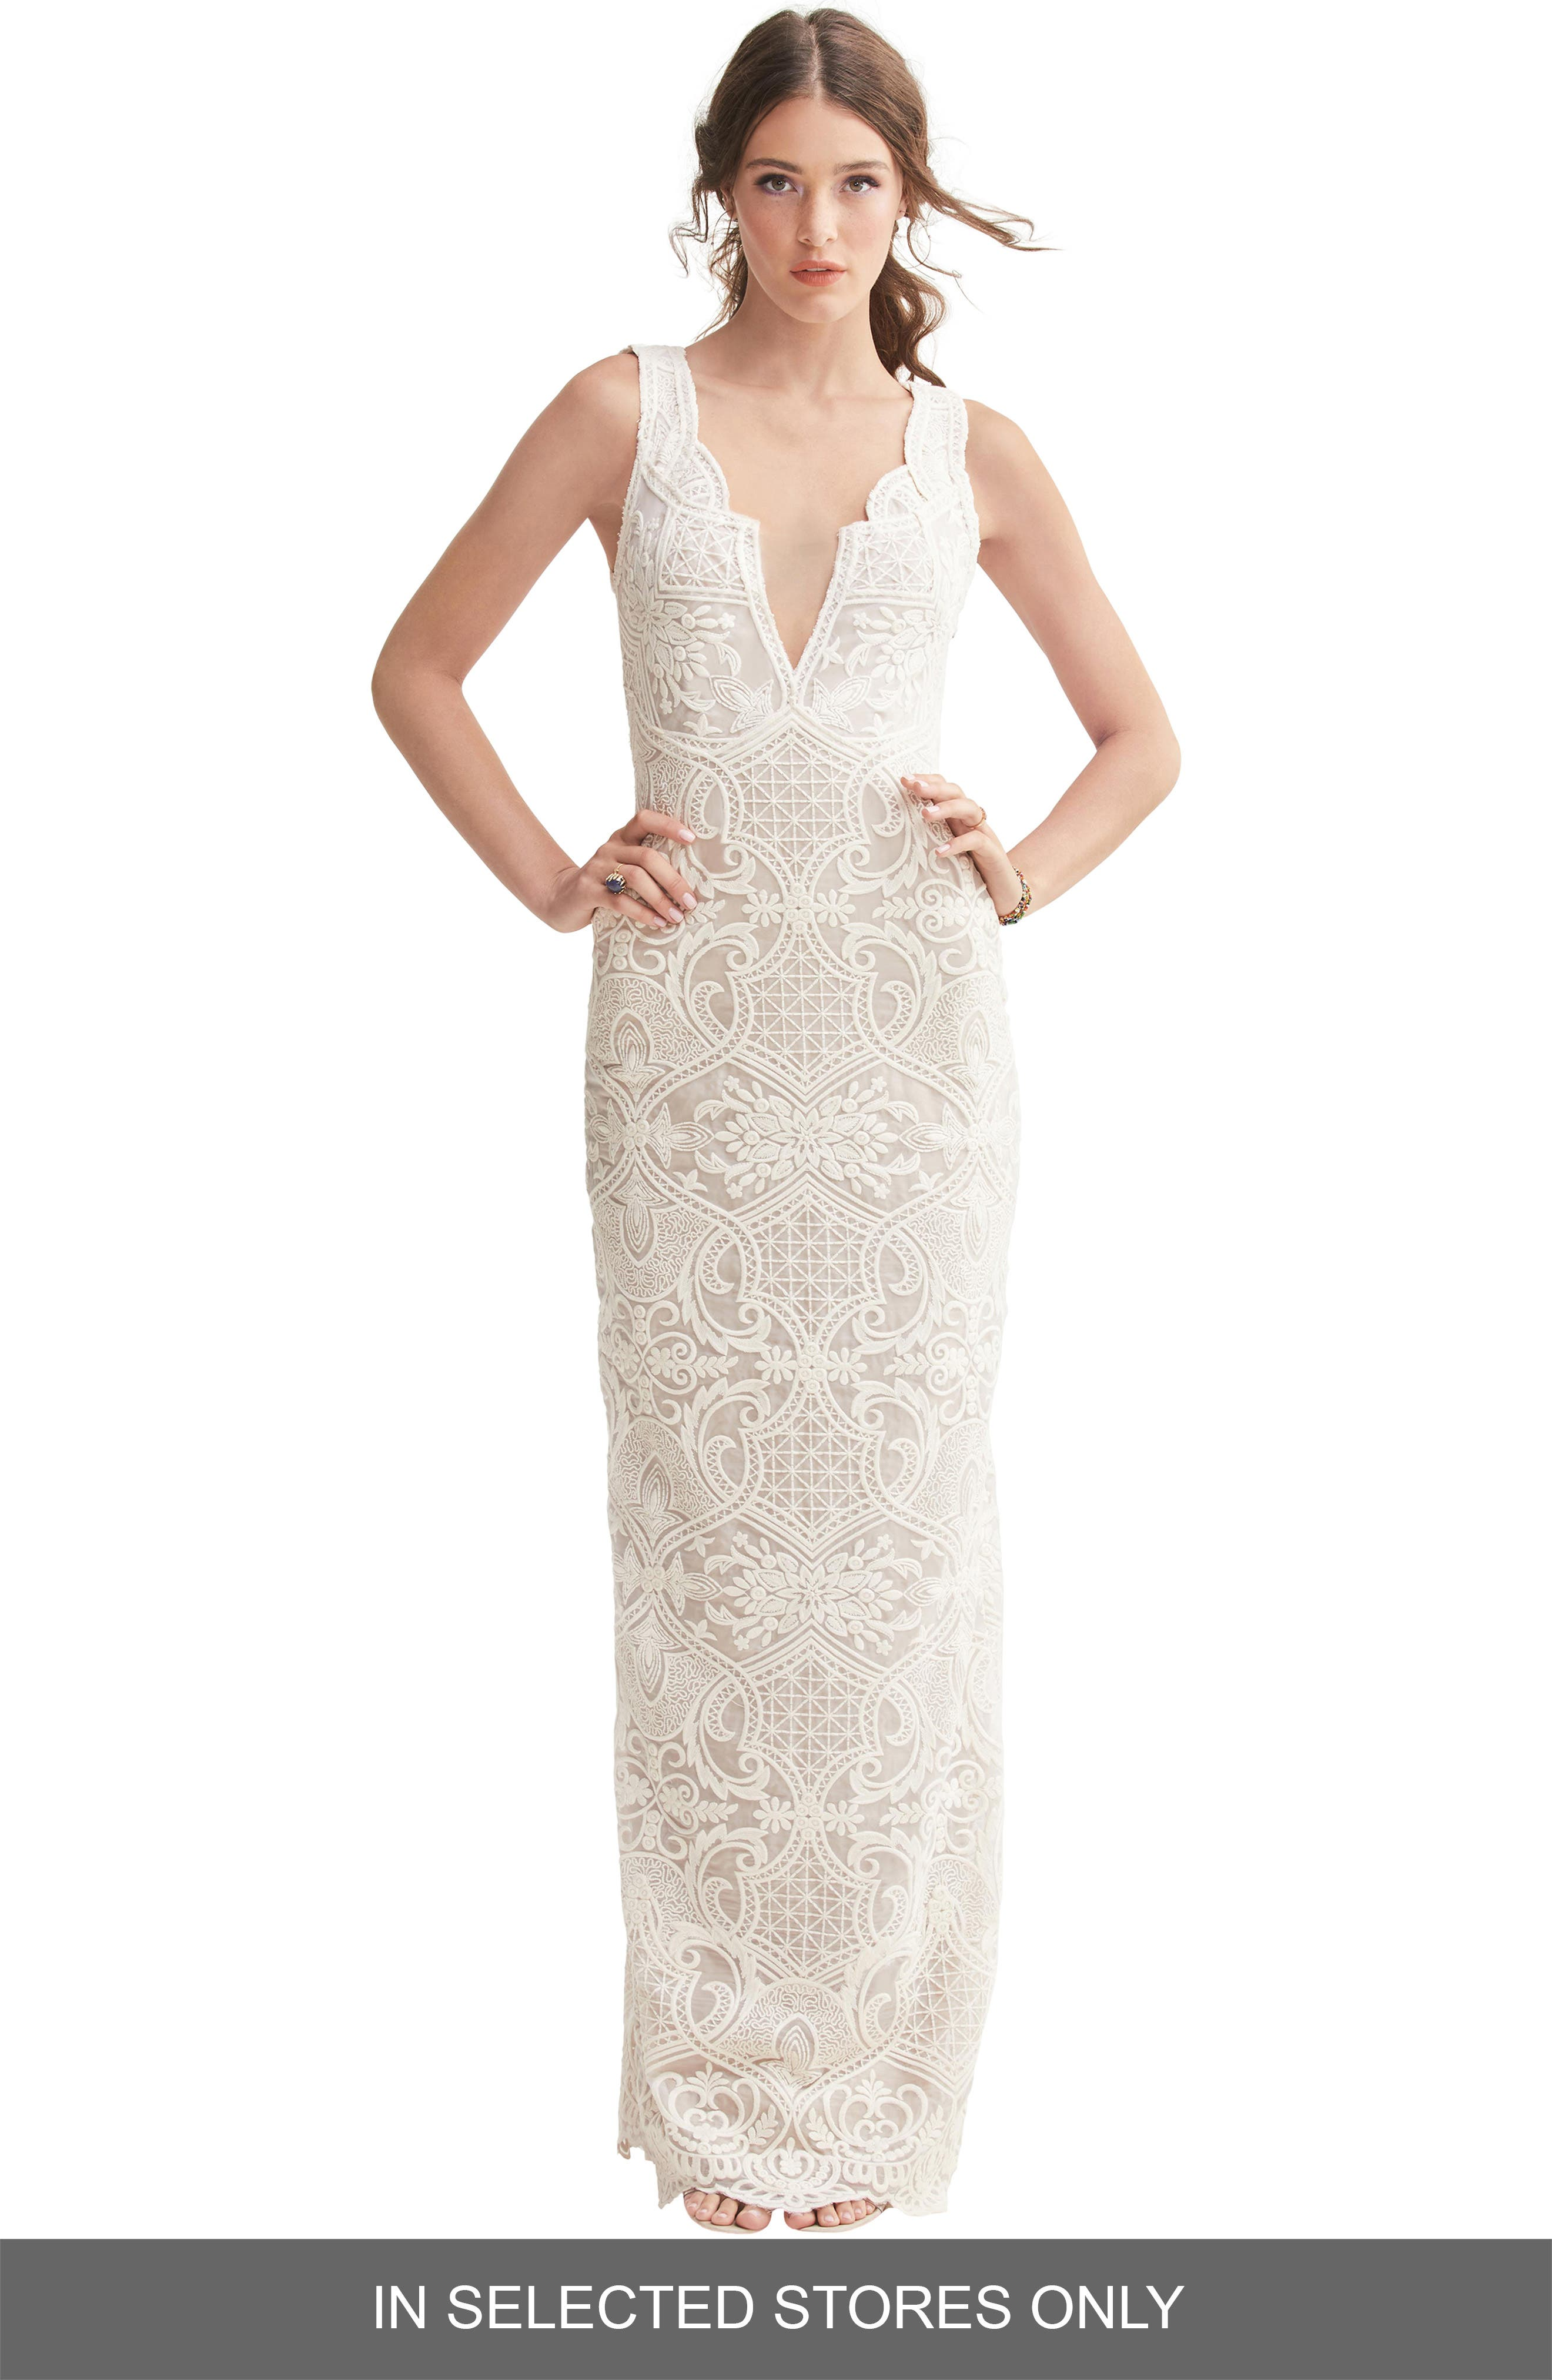 Willowby Gypsie Lace Column Wedding Dress, Size IN STORE ONLY - Ivory